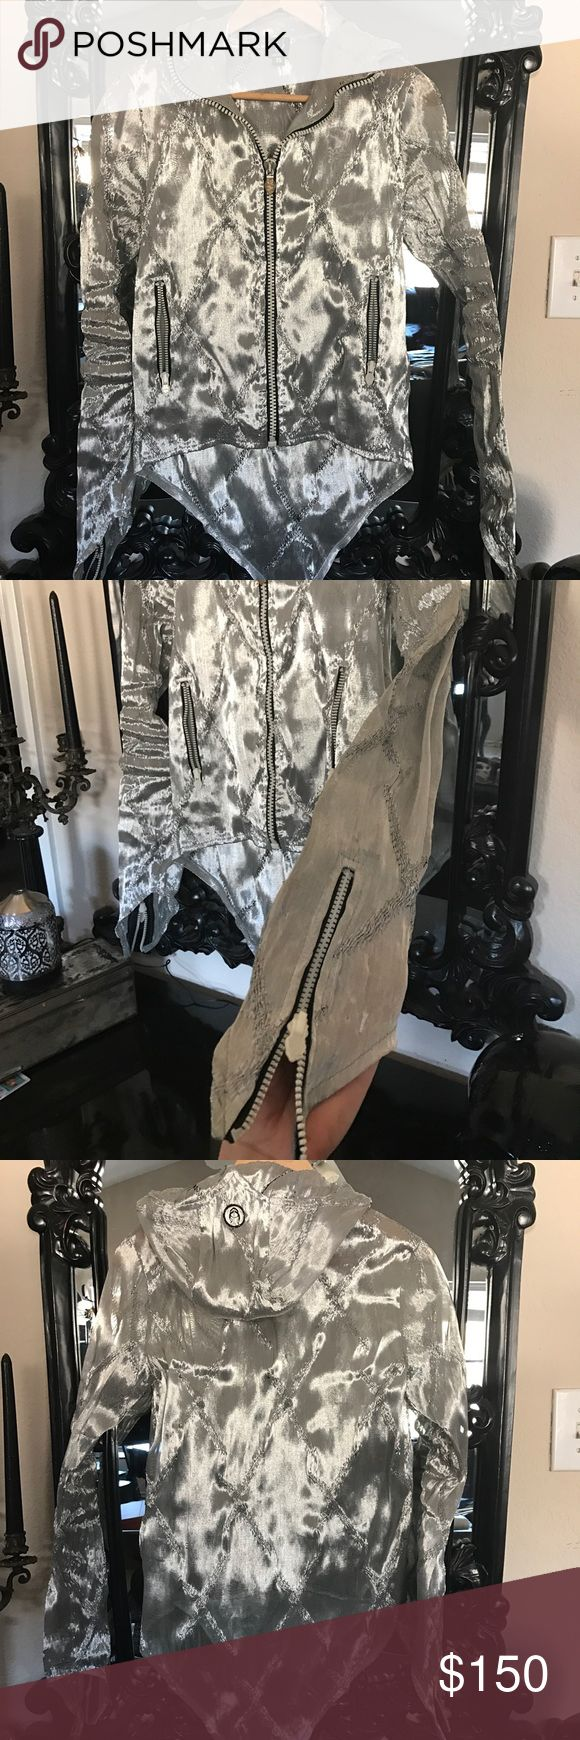 Limited Cyberdog Mesh Silver hoodie Limited RARE Cyberdog Mesh Silver hoodie. This item is extremely rare and bought at Cyberdog retail clothing store in London UK. It's a size small but fits a medium. Worn once and in excellent condition. cyberpunk cyberdog Jackets & Coats